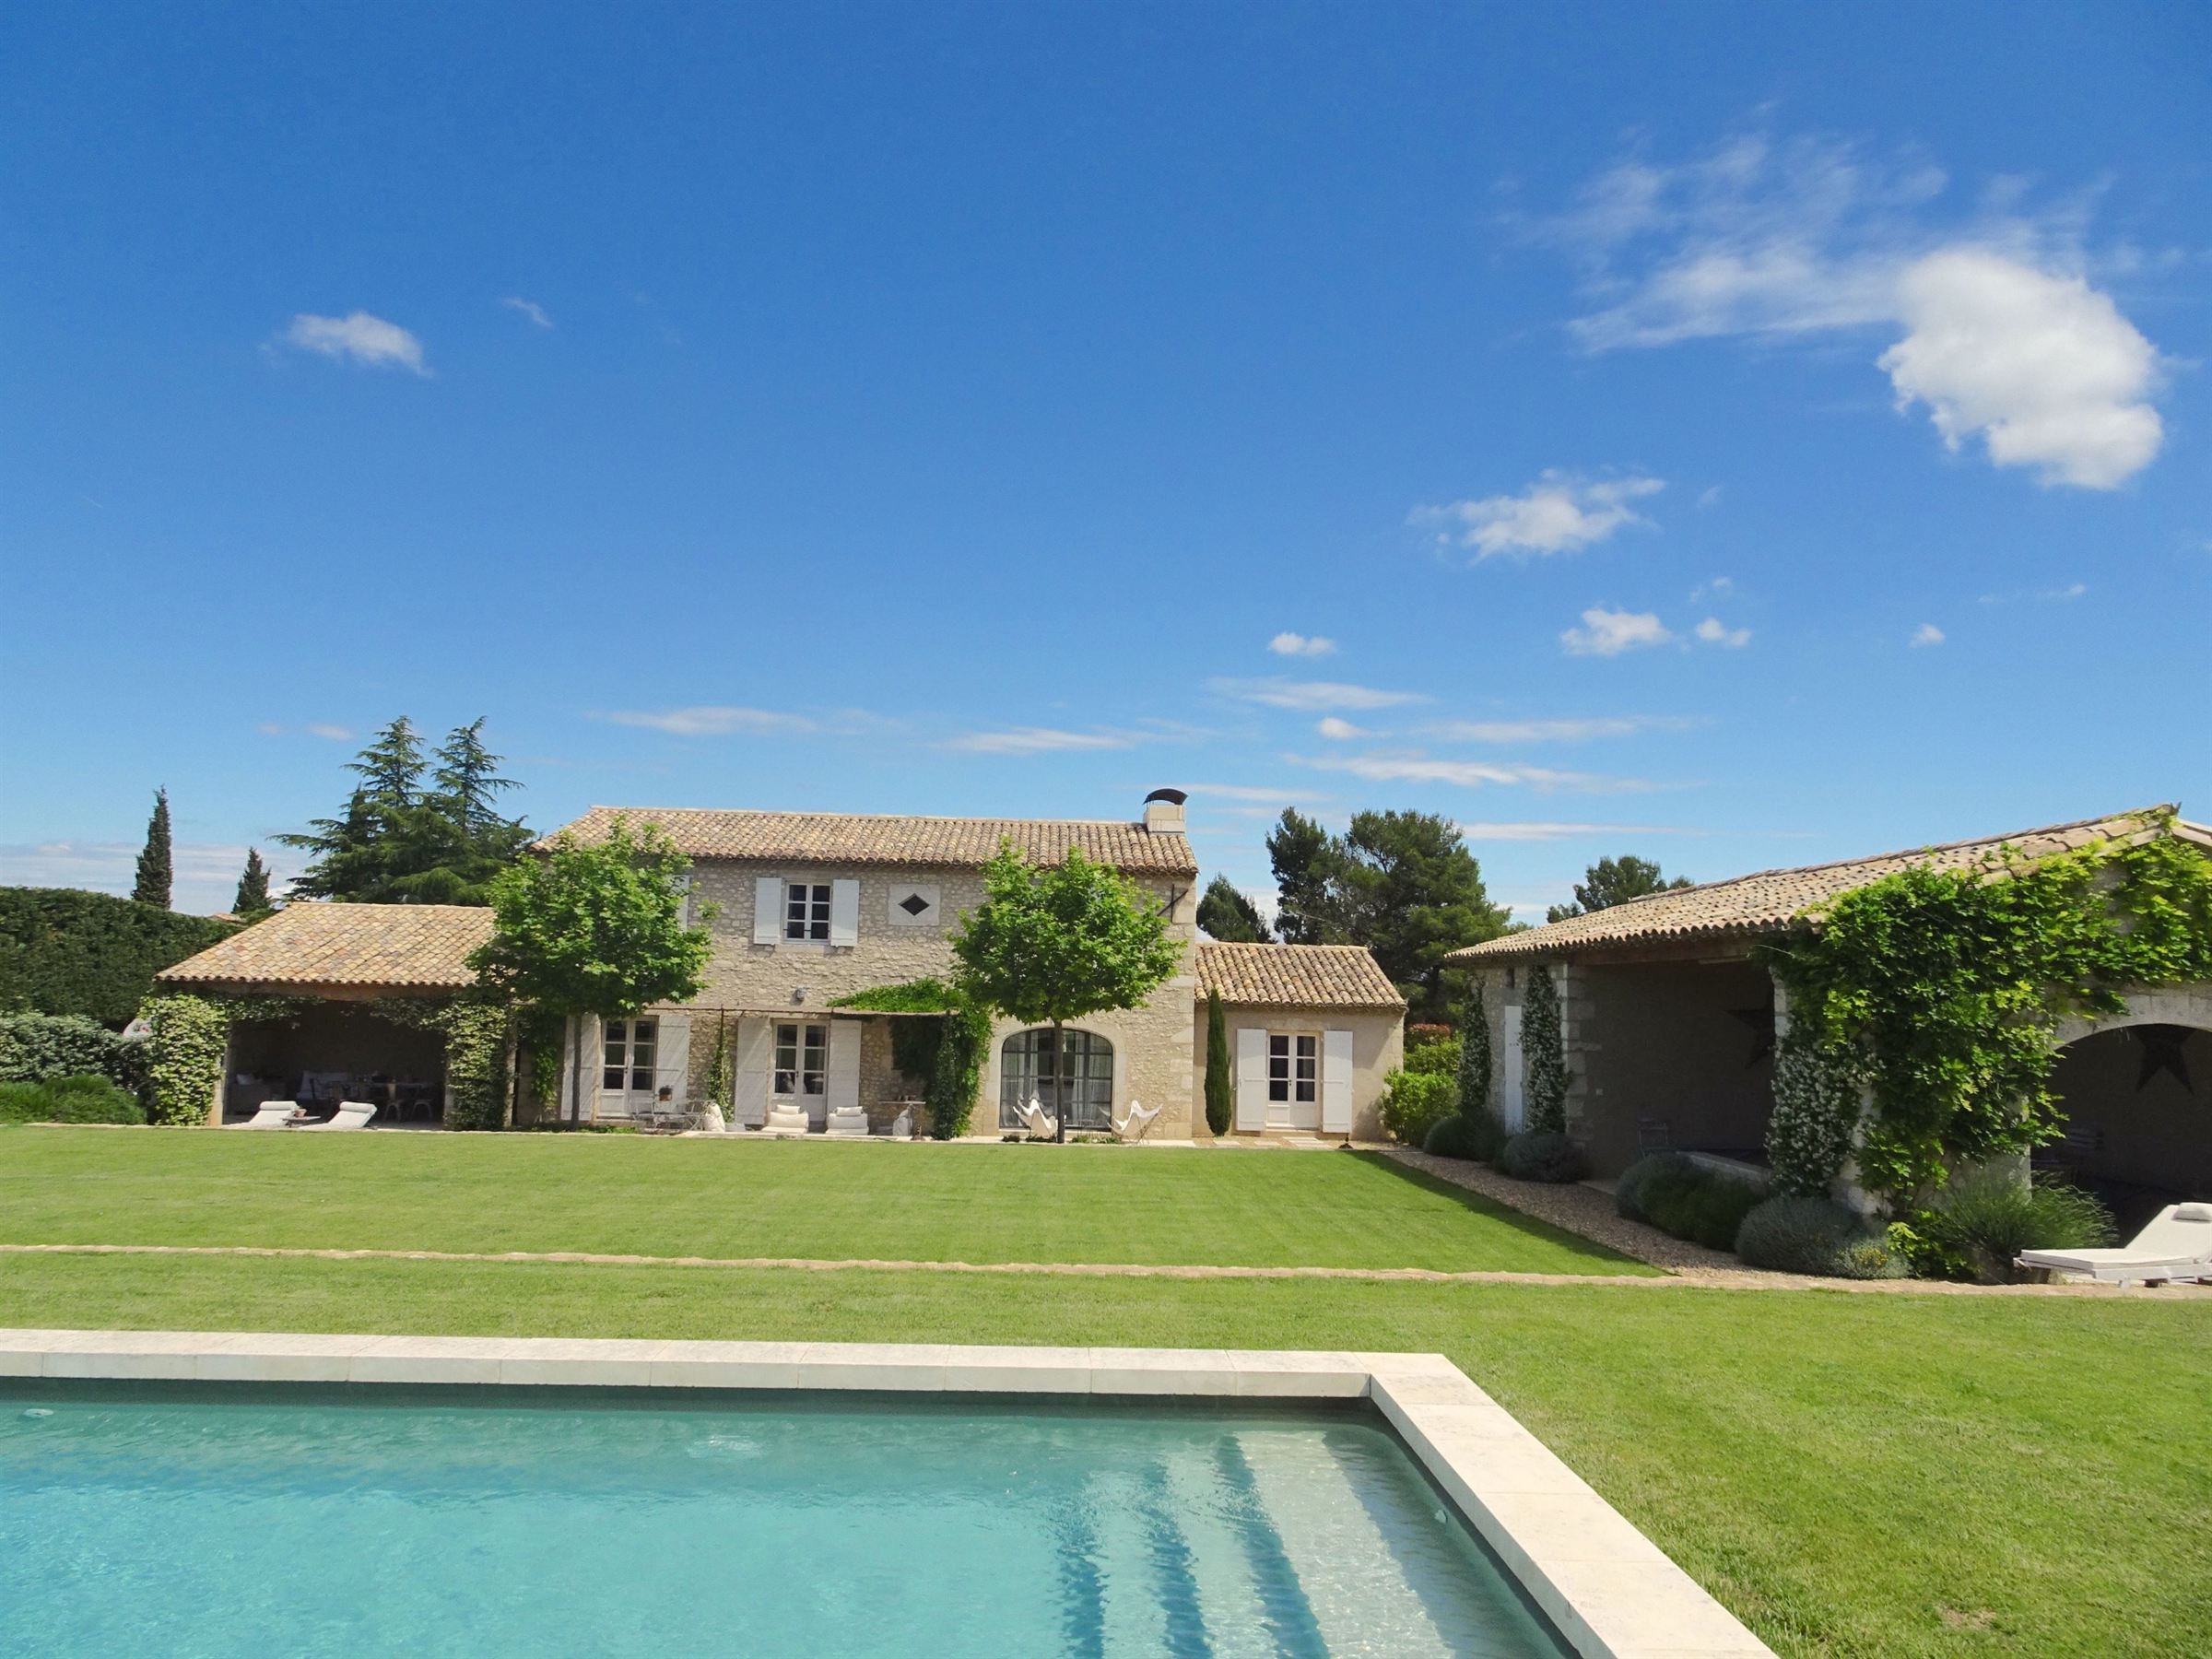 Single Family Home for Sale at Elegant farmhouse in Eygalieres Eygalieres, Provence-Alpes-Cote D'Azur, 13810 France